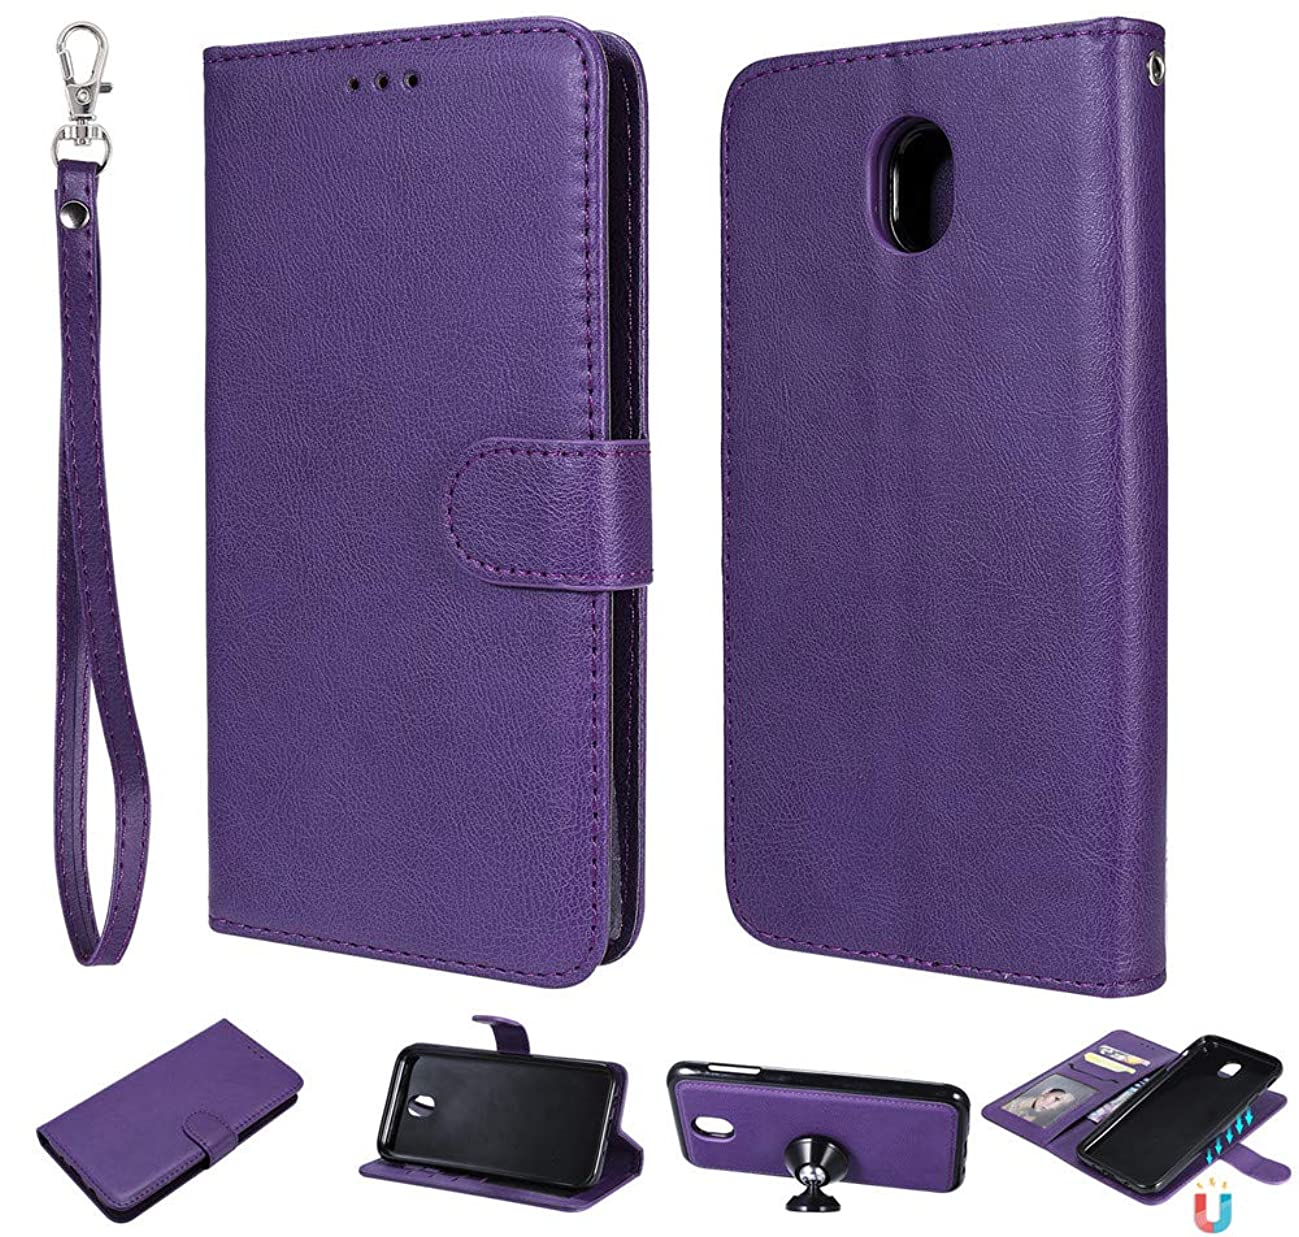 IVY 2 in 1 Wallet Case for Galaxy J7 Pro,[Detachable][Fit Magnetic Car Moun] Samsung J7 Pro SM-J730 PU Leather Folio Flip Cover with Wrist Strap - Purple